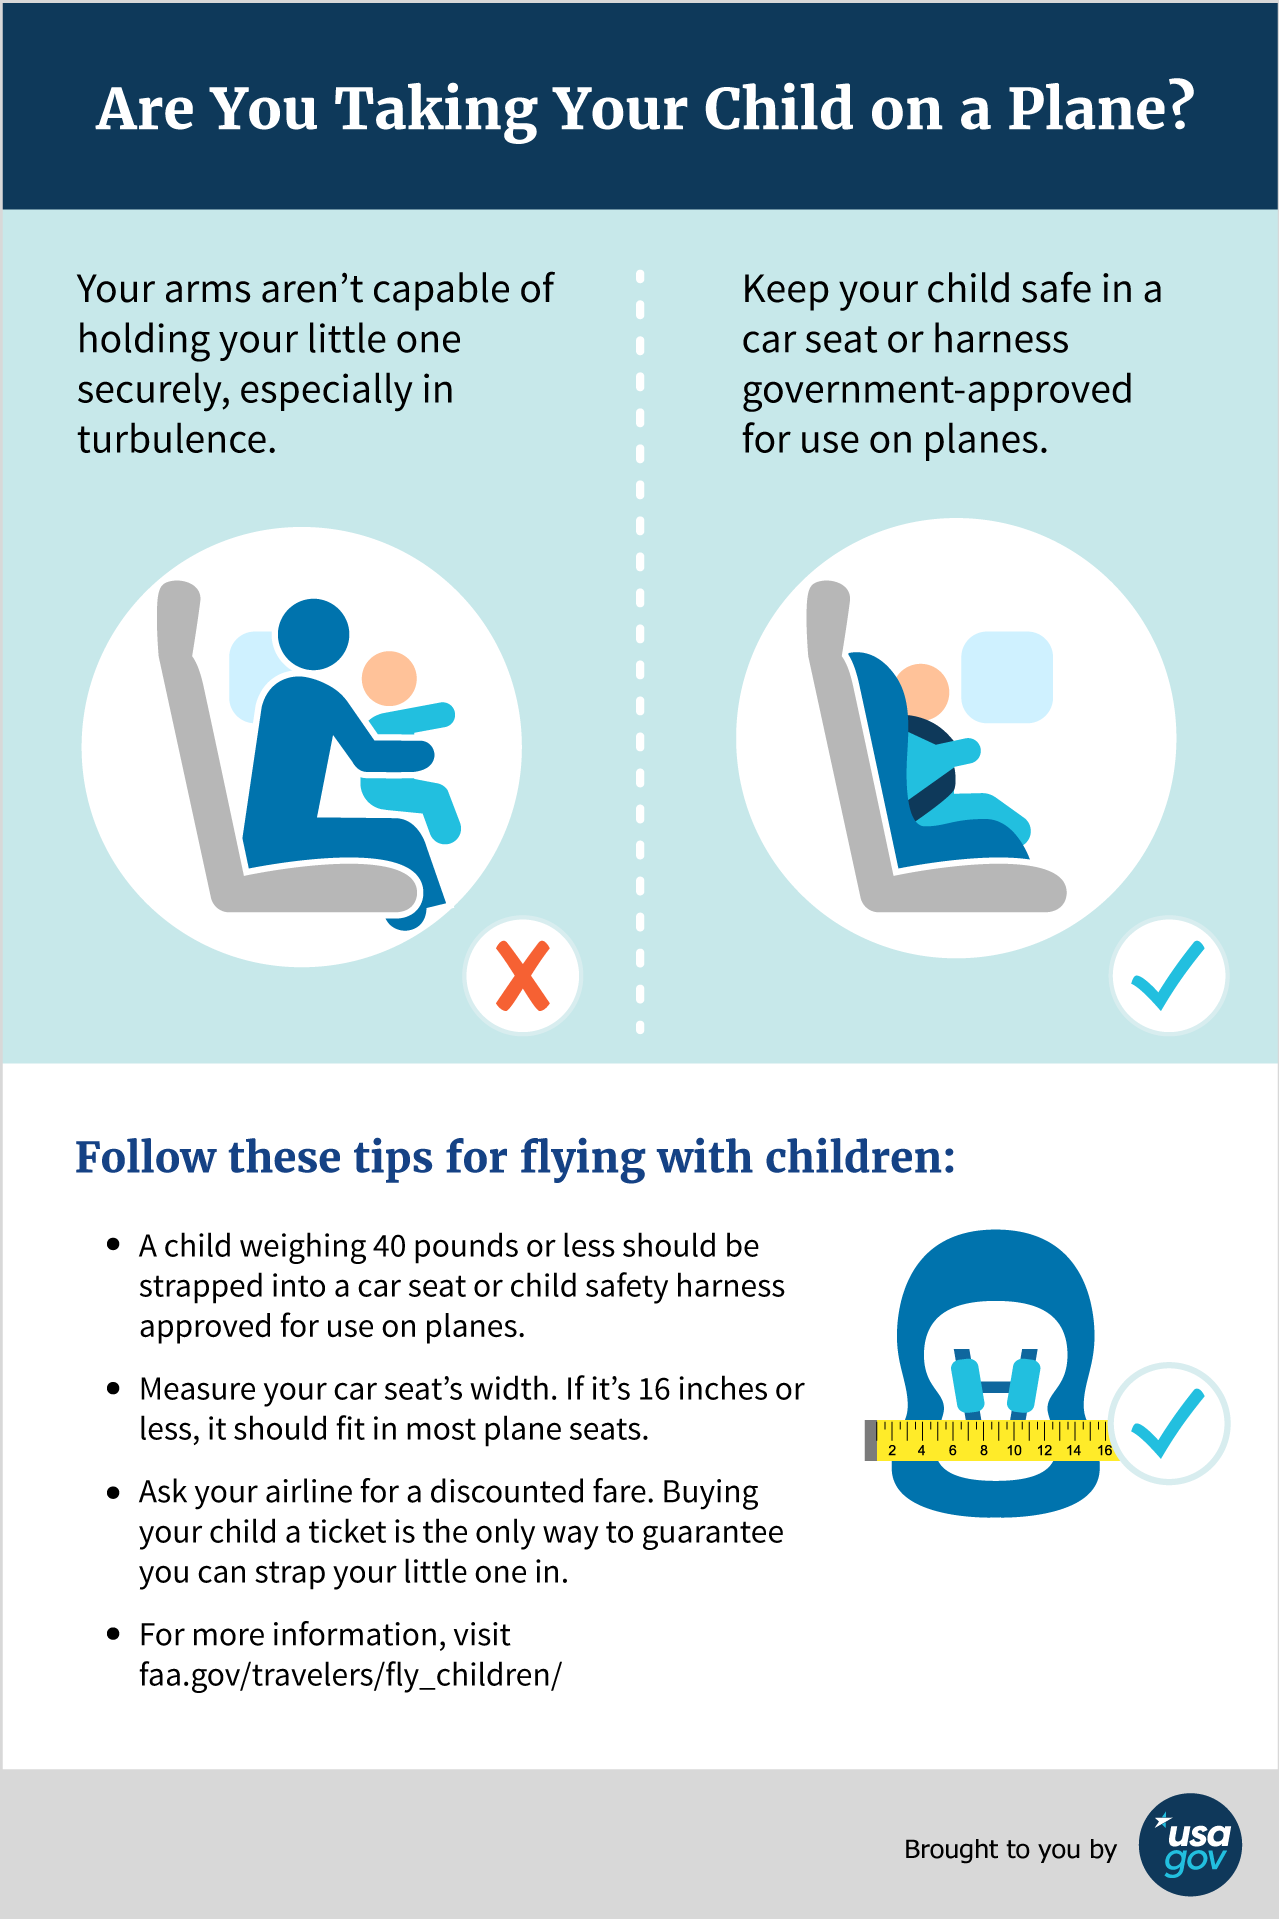 Are You Taking Your Child on a Plane? Description of Infographic below.